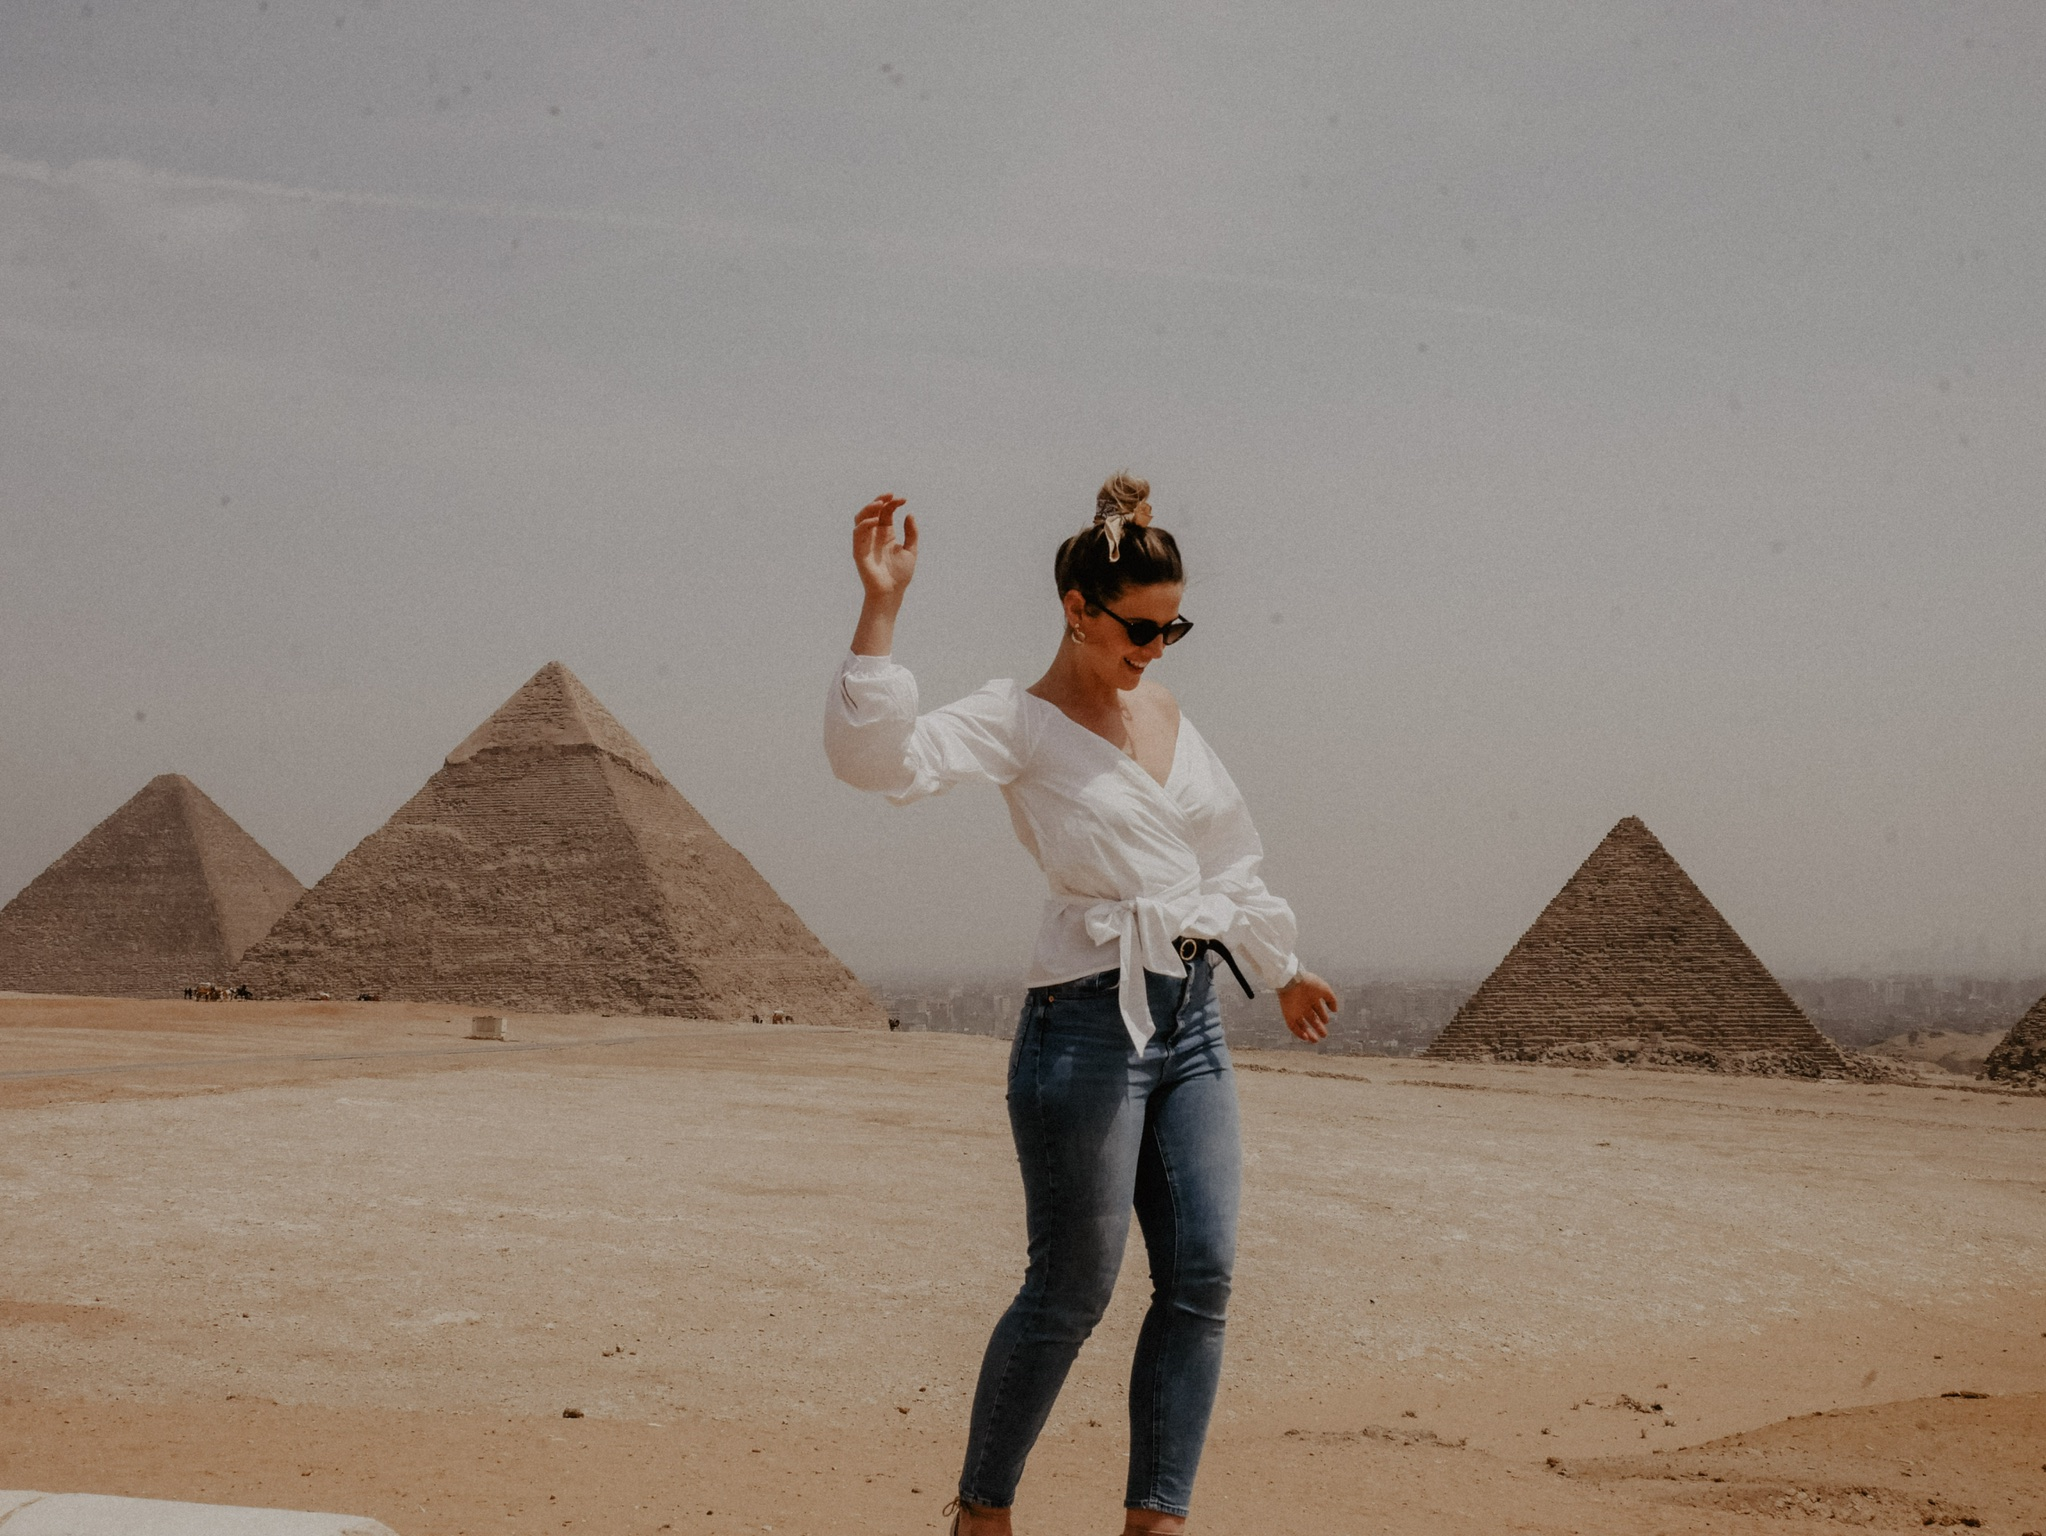 CAIRO FLIGHT ATTENDANT LAYOVER // 48 HOURS IN EGYPT